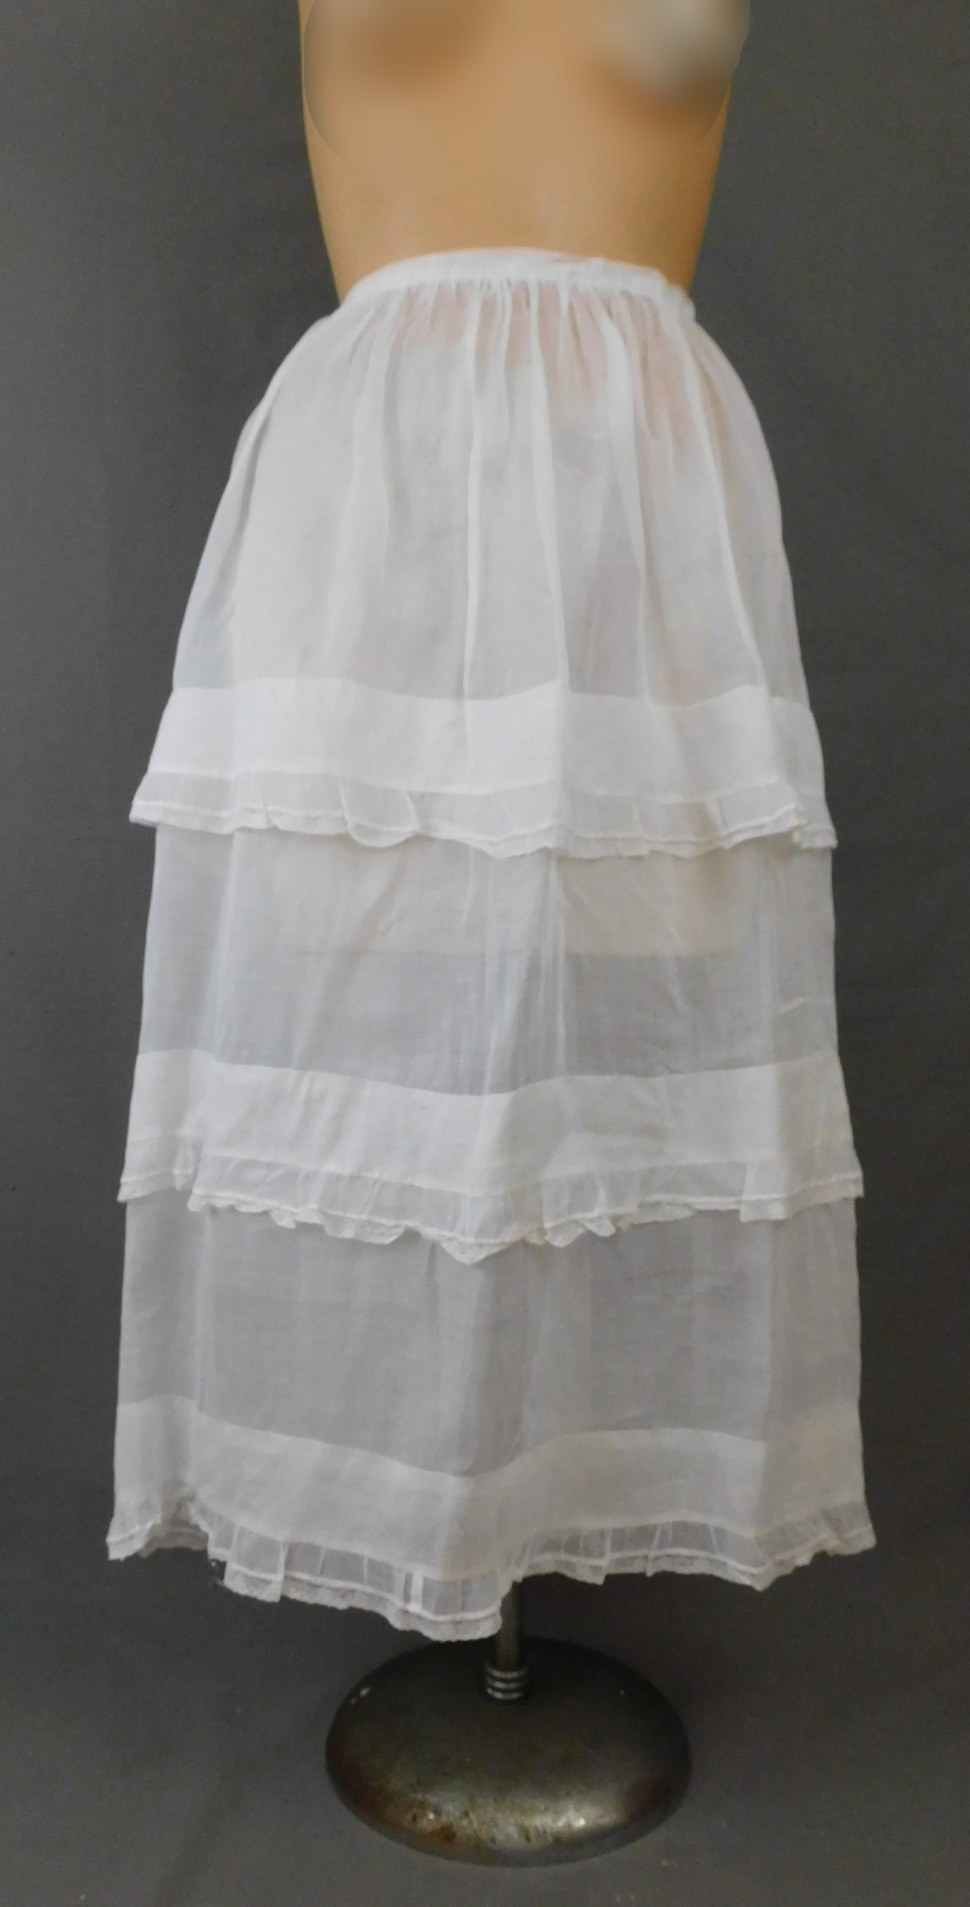 Edwardian Sheer Organdy Skirt, Vintage 1900s White Cotton, 26 inch waist, 32 inches long